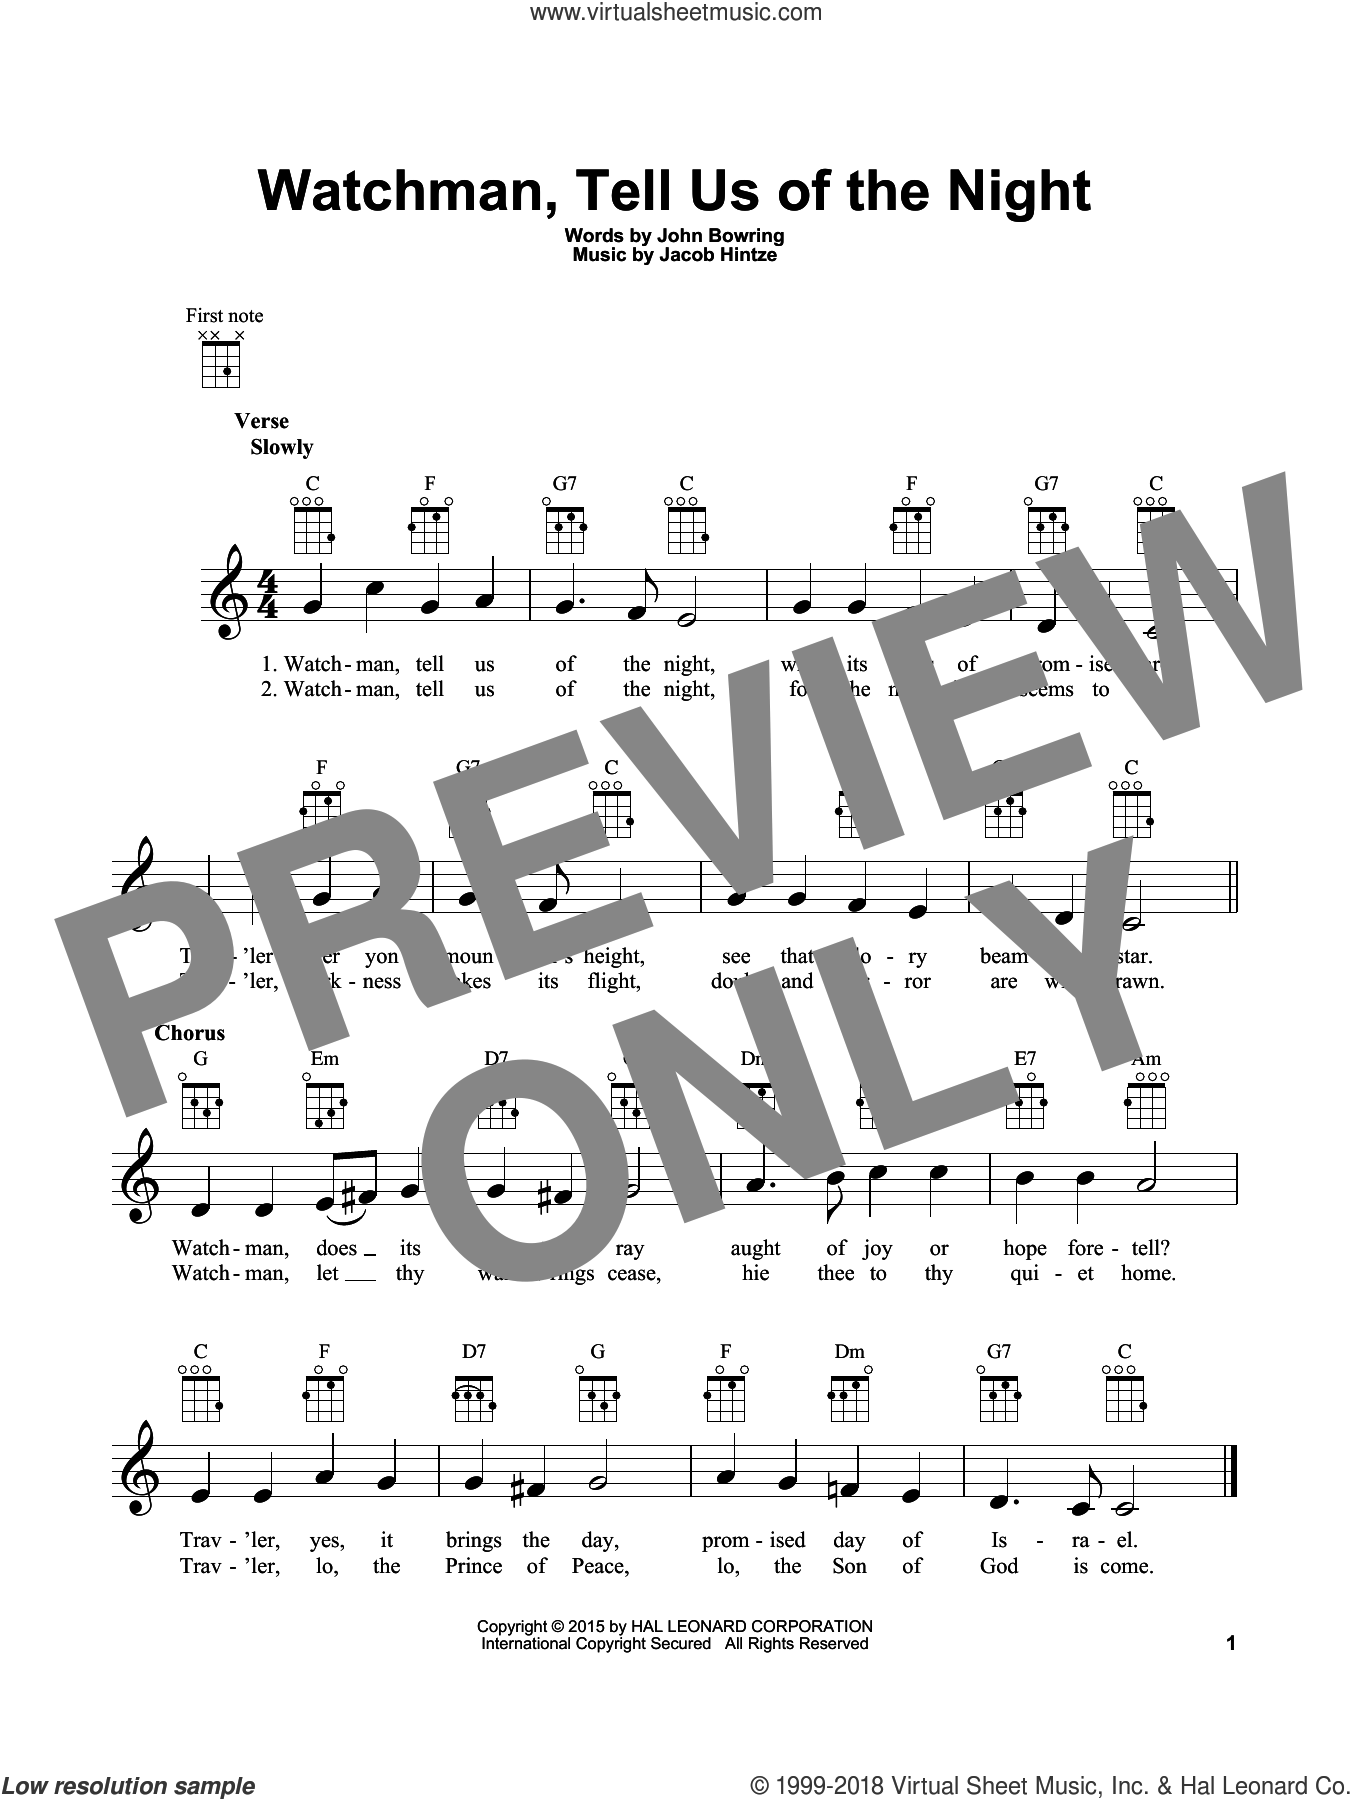 Watchman, Tell Us Of The Night sheet music for ukulele by John Bowring and Jacob Hintze, intermediate skill level